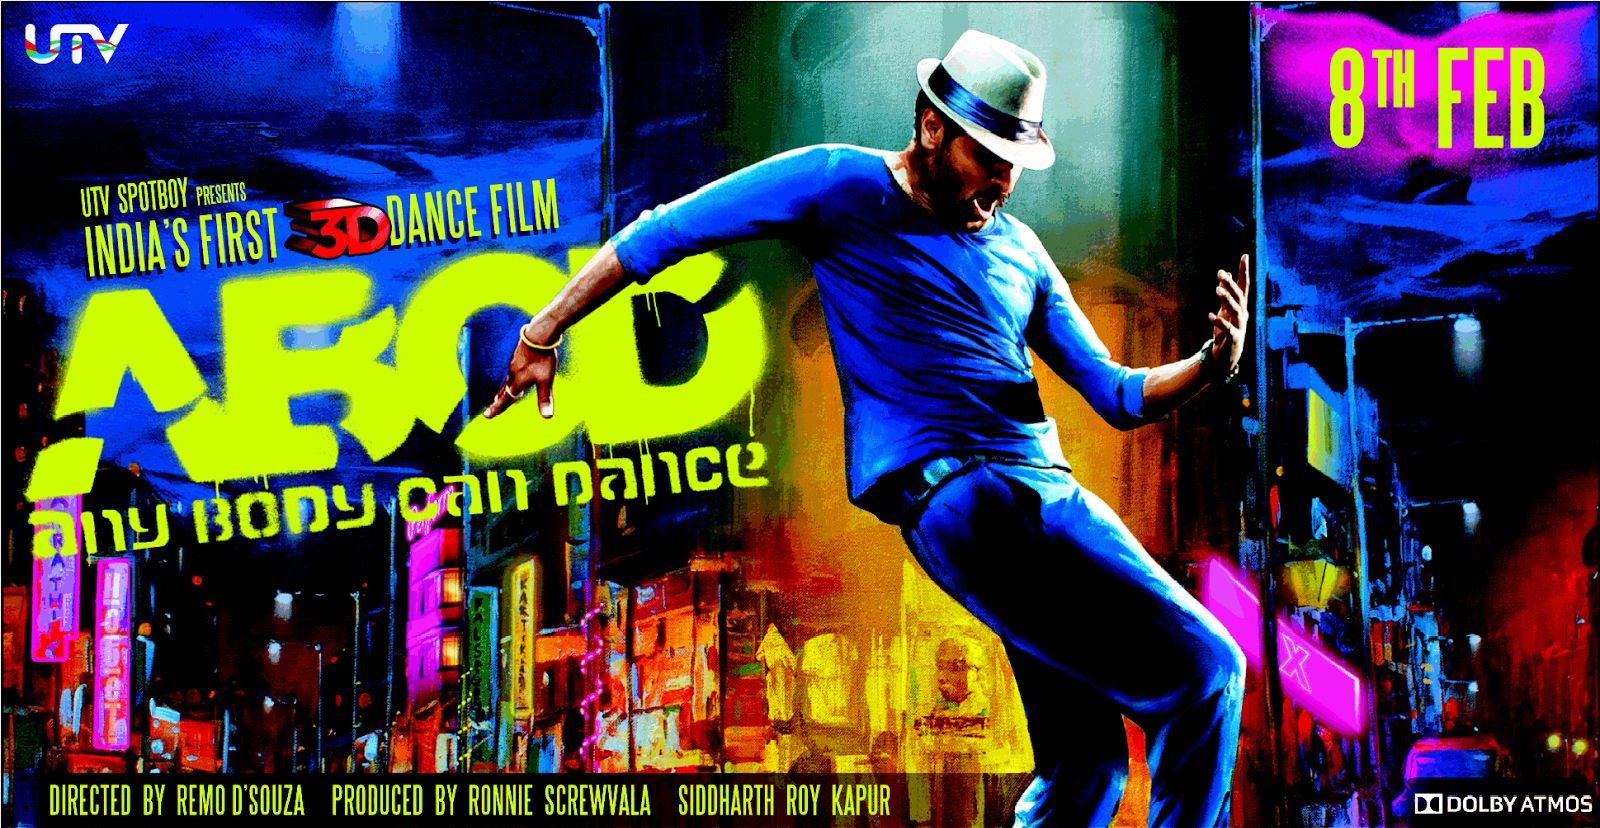 abcd movie songs mp3 free download pk